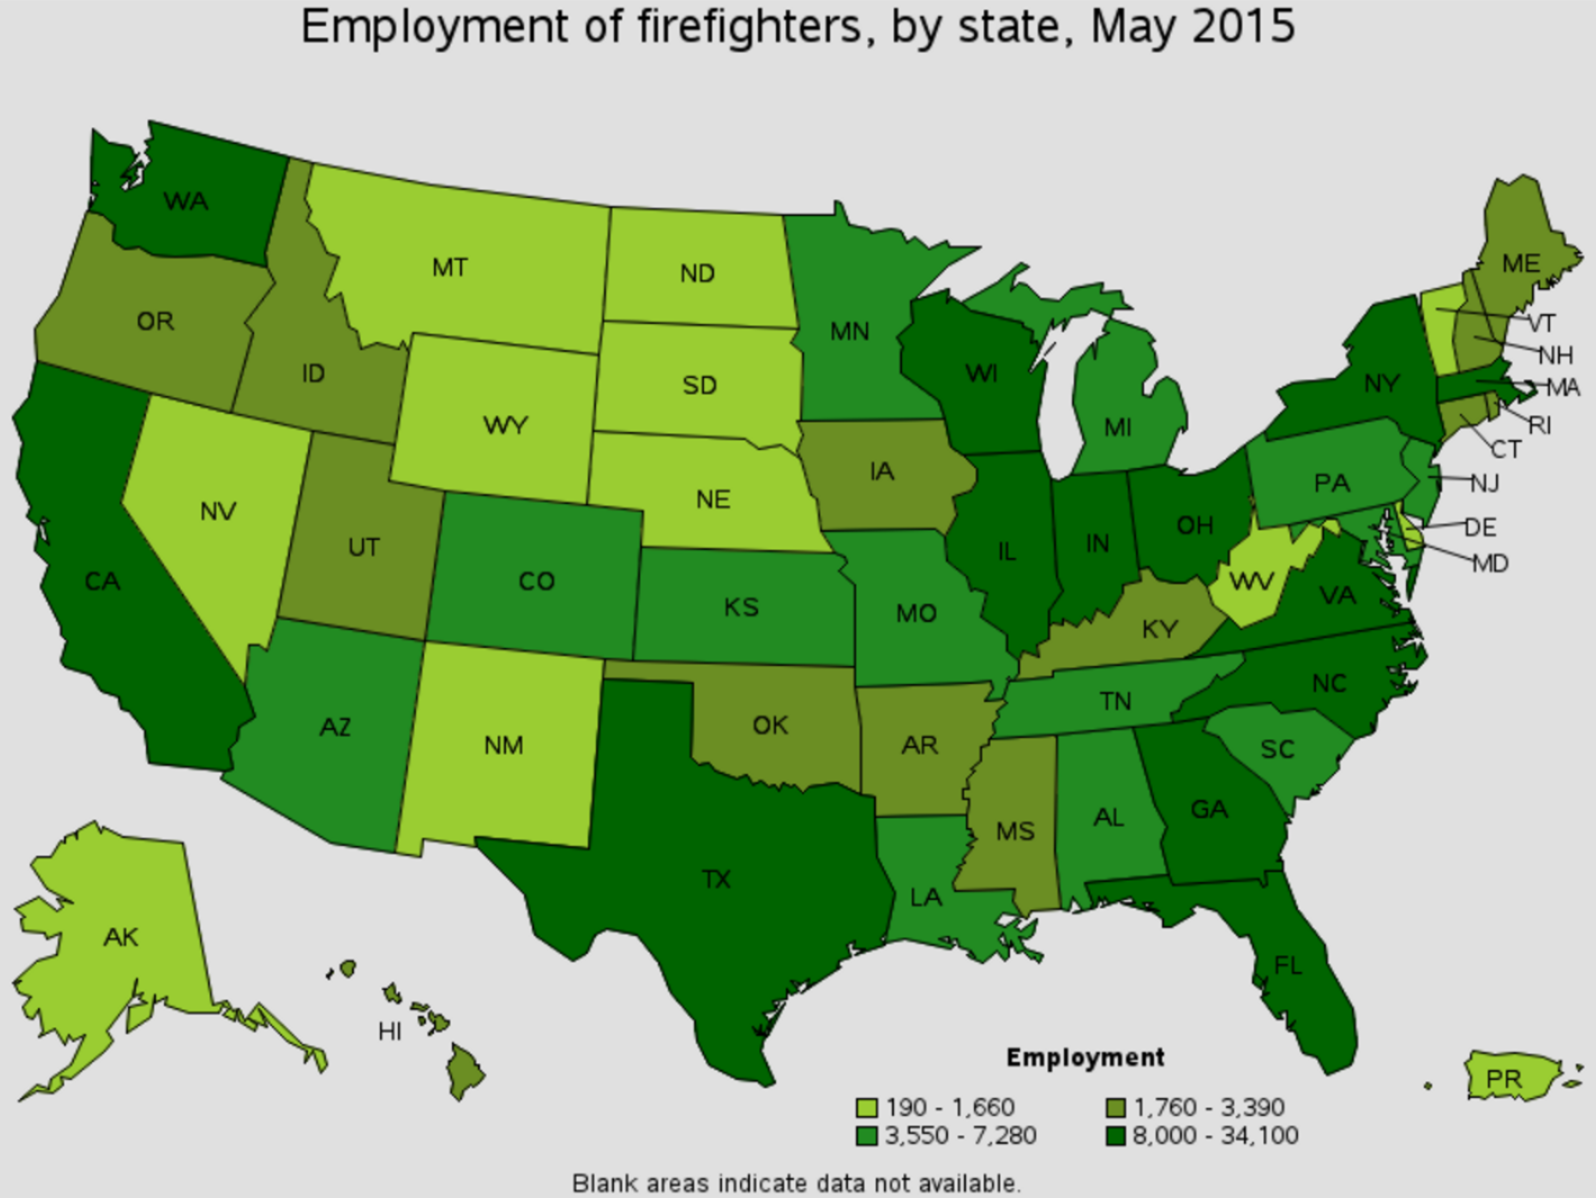 firefighter job outlook by state Smithville Texas